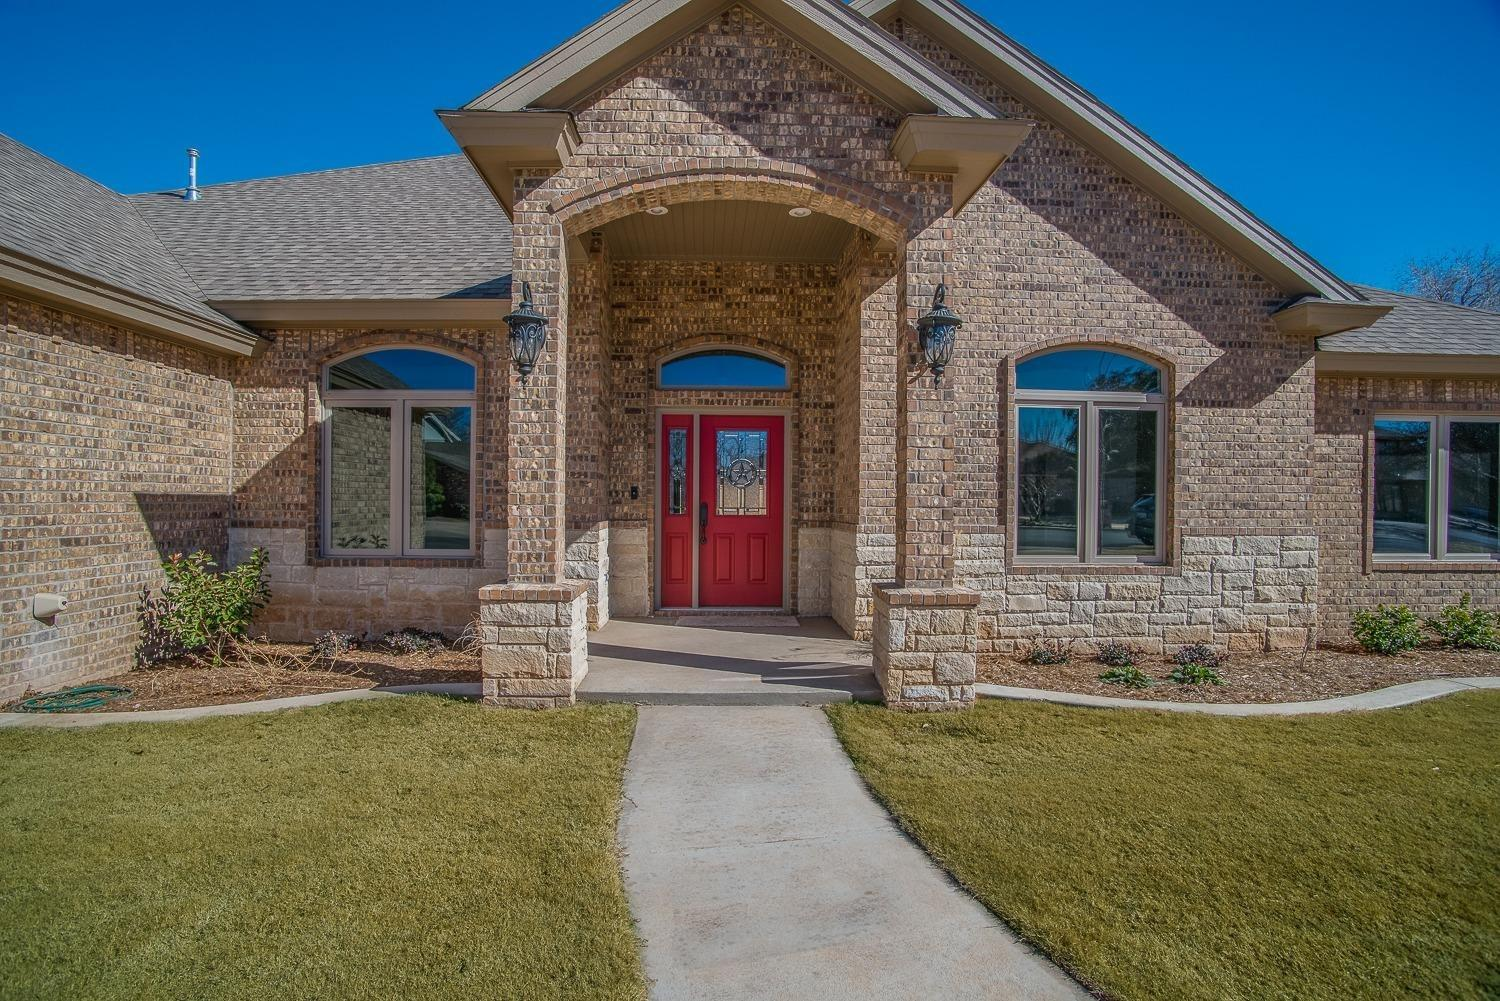 Motivated Seller relocating for job! Come see this newer construction home near TTU, LCU, and Hospitals. Built in 2016, this custom home has everything! 4 bedrooms, 3 bathrooms, basement, and office. It also has a huge covered patio and a well-appointed back yard. You won't find a better house in a better location for $120/sqft. Don't let this rare opportunity pass you by!